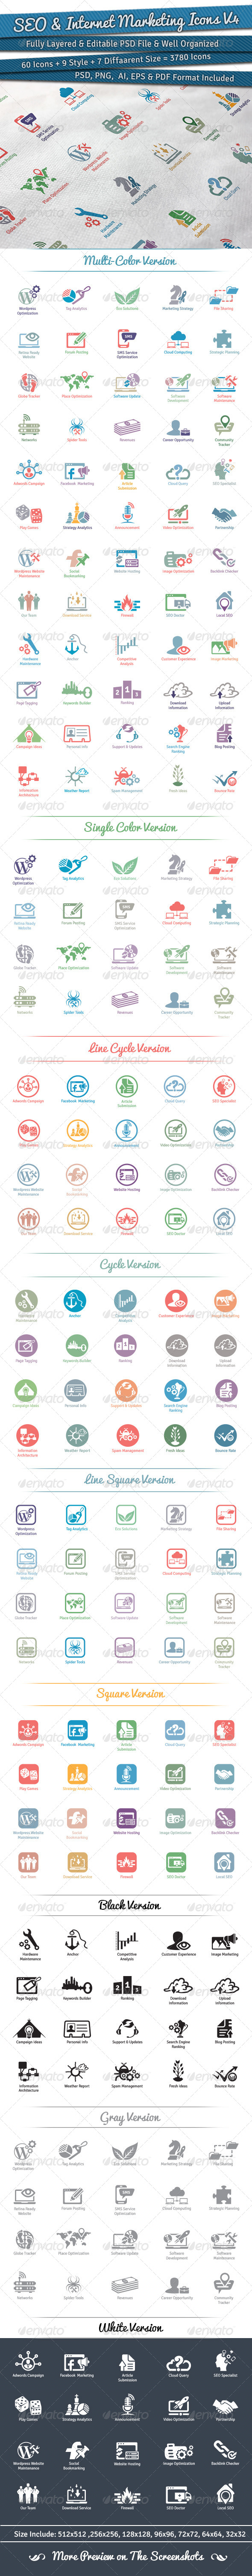 GraphicRiver 60 SEO & Internet Marketing Icons Volume 4 5848641